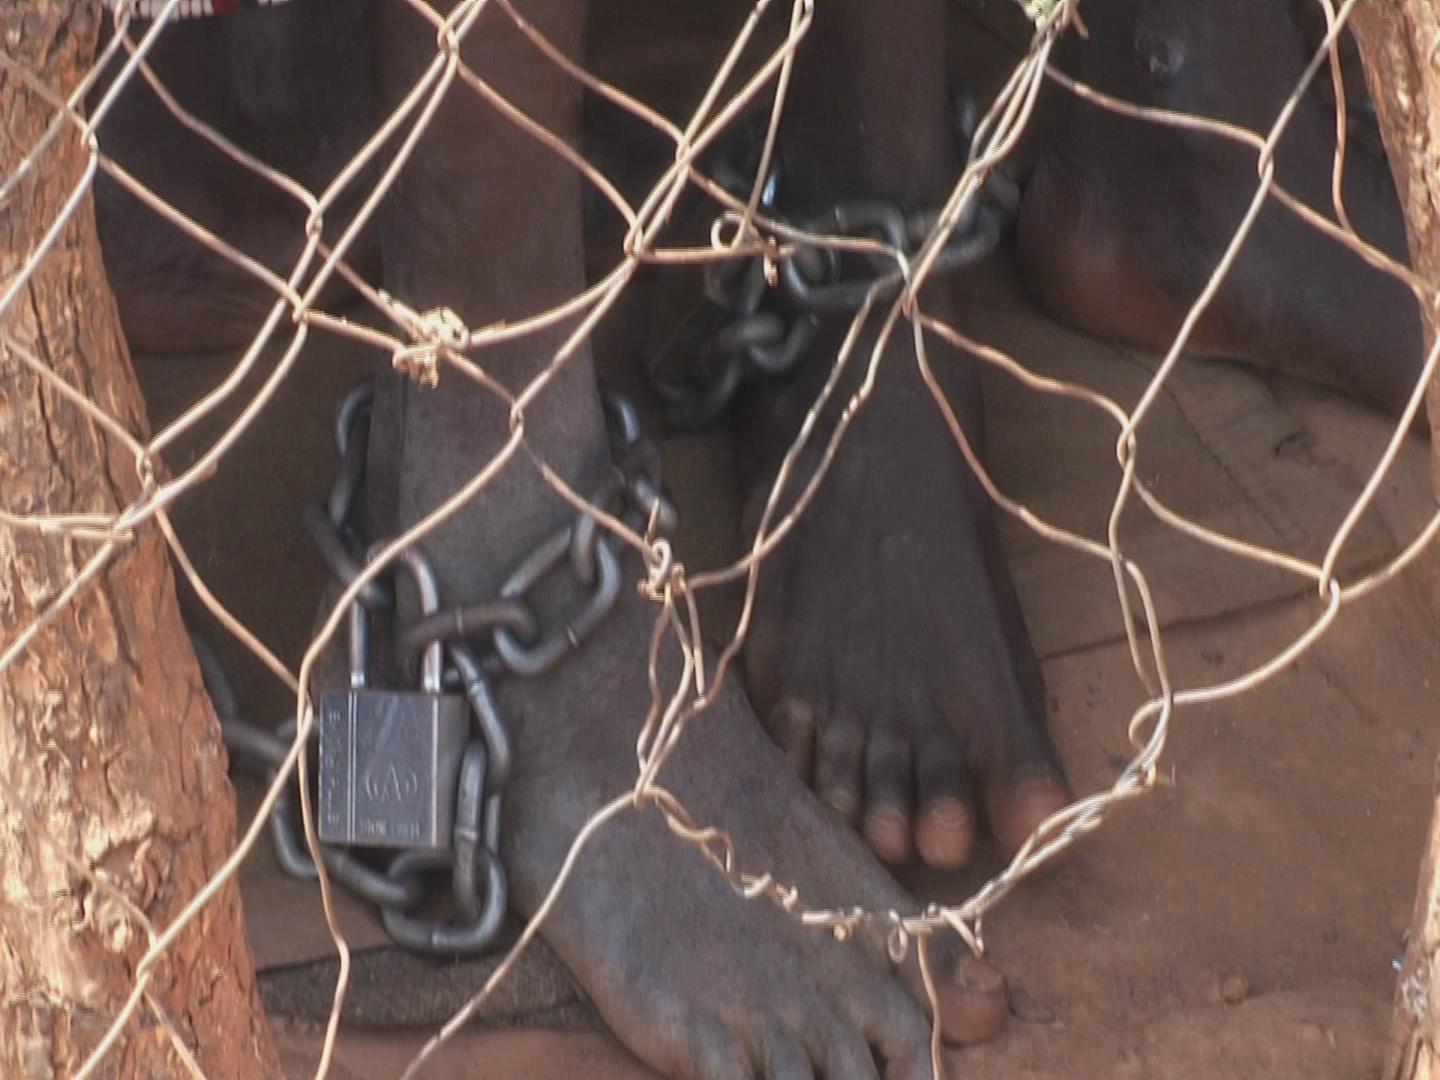 Selected frame from video story SOUTH SUDAN / HUMAN RIGHTS MONITORING